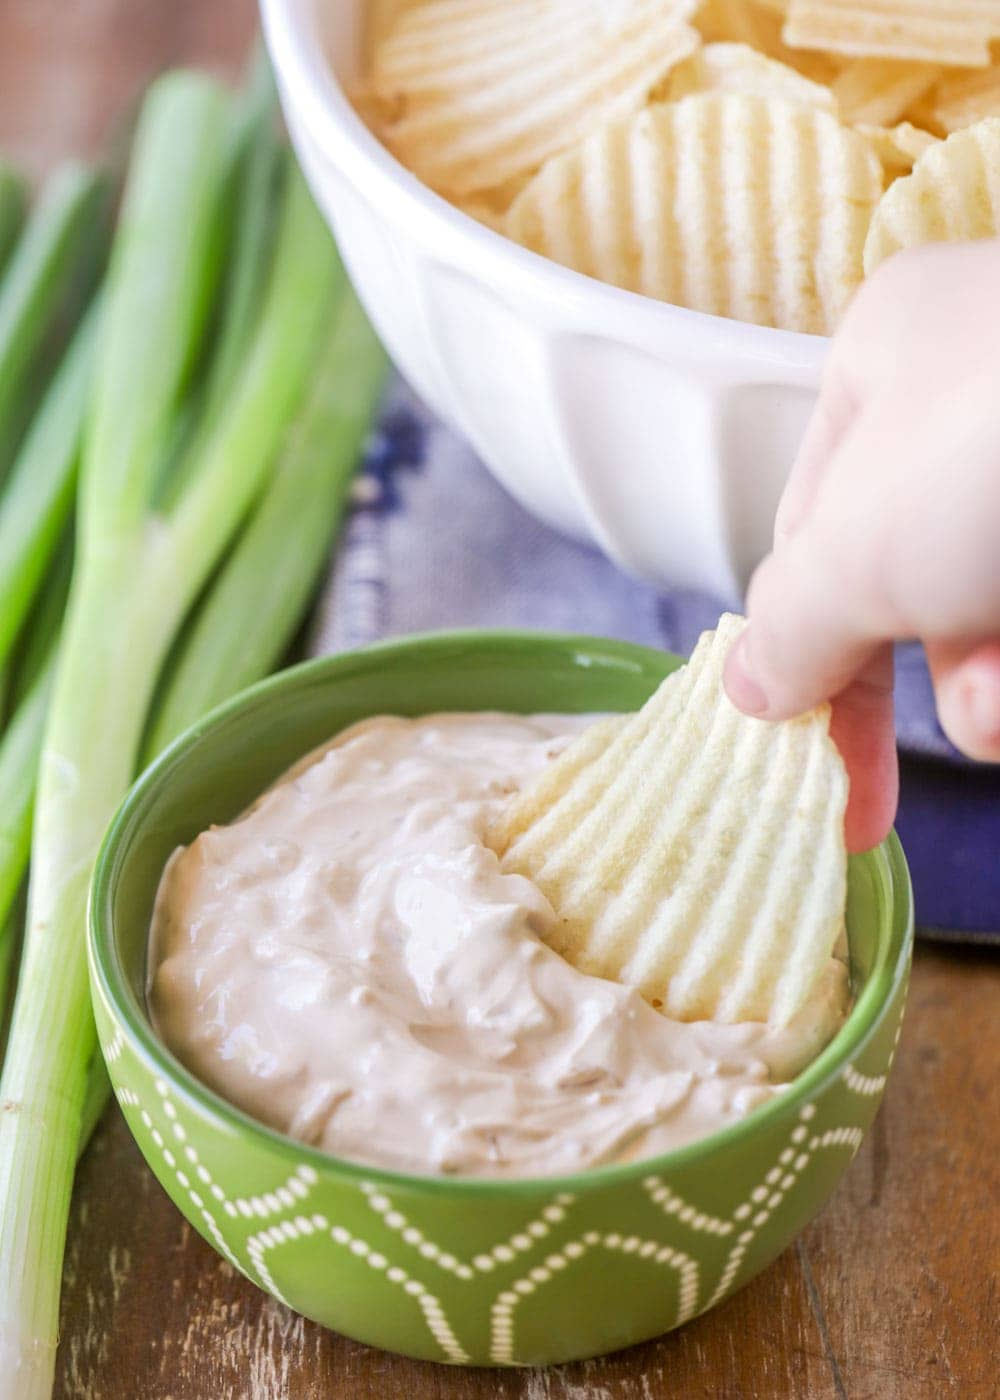 Dipping a chip into homemade french onion dip